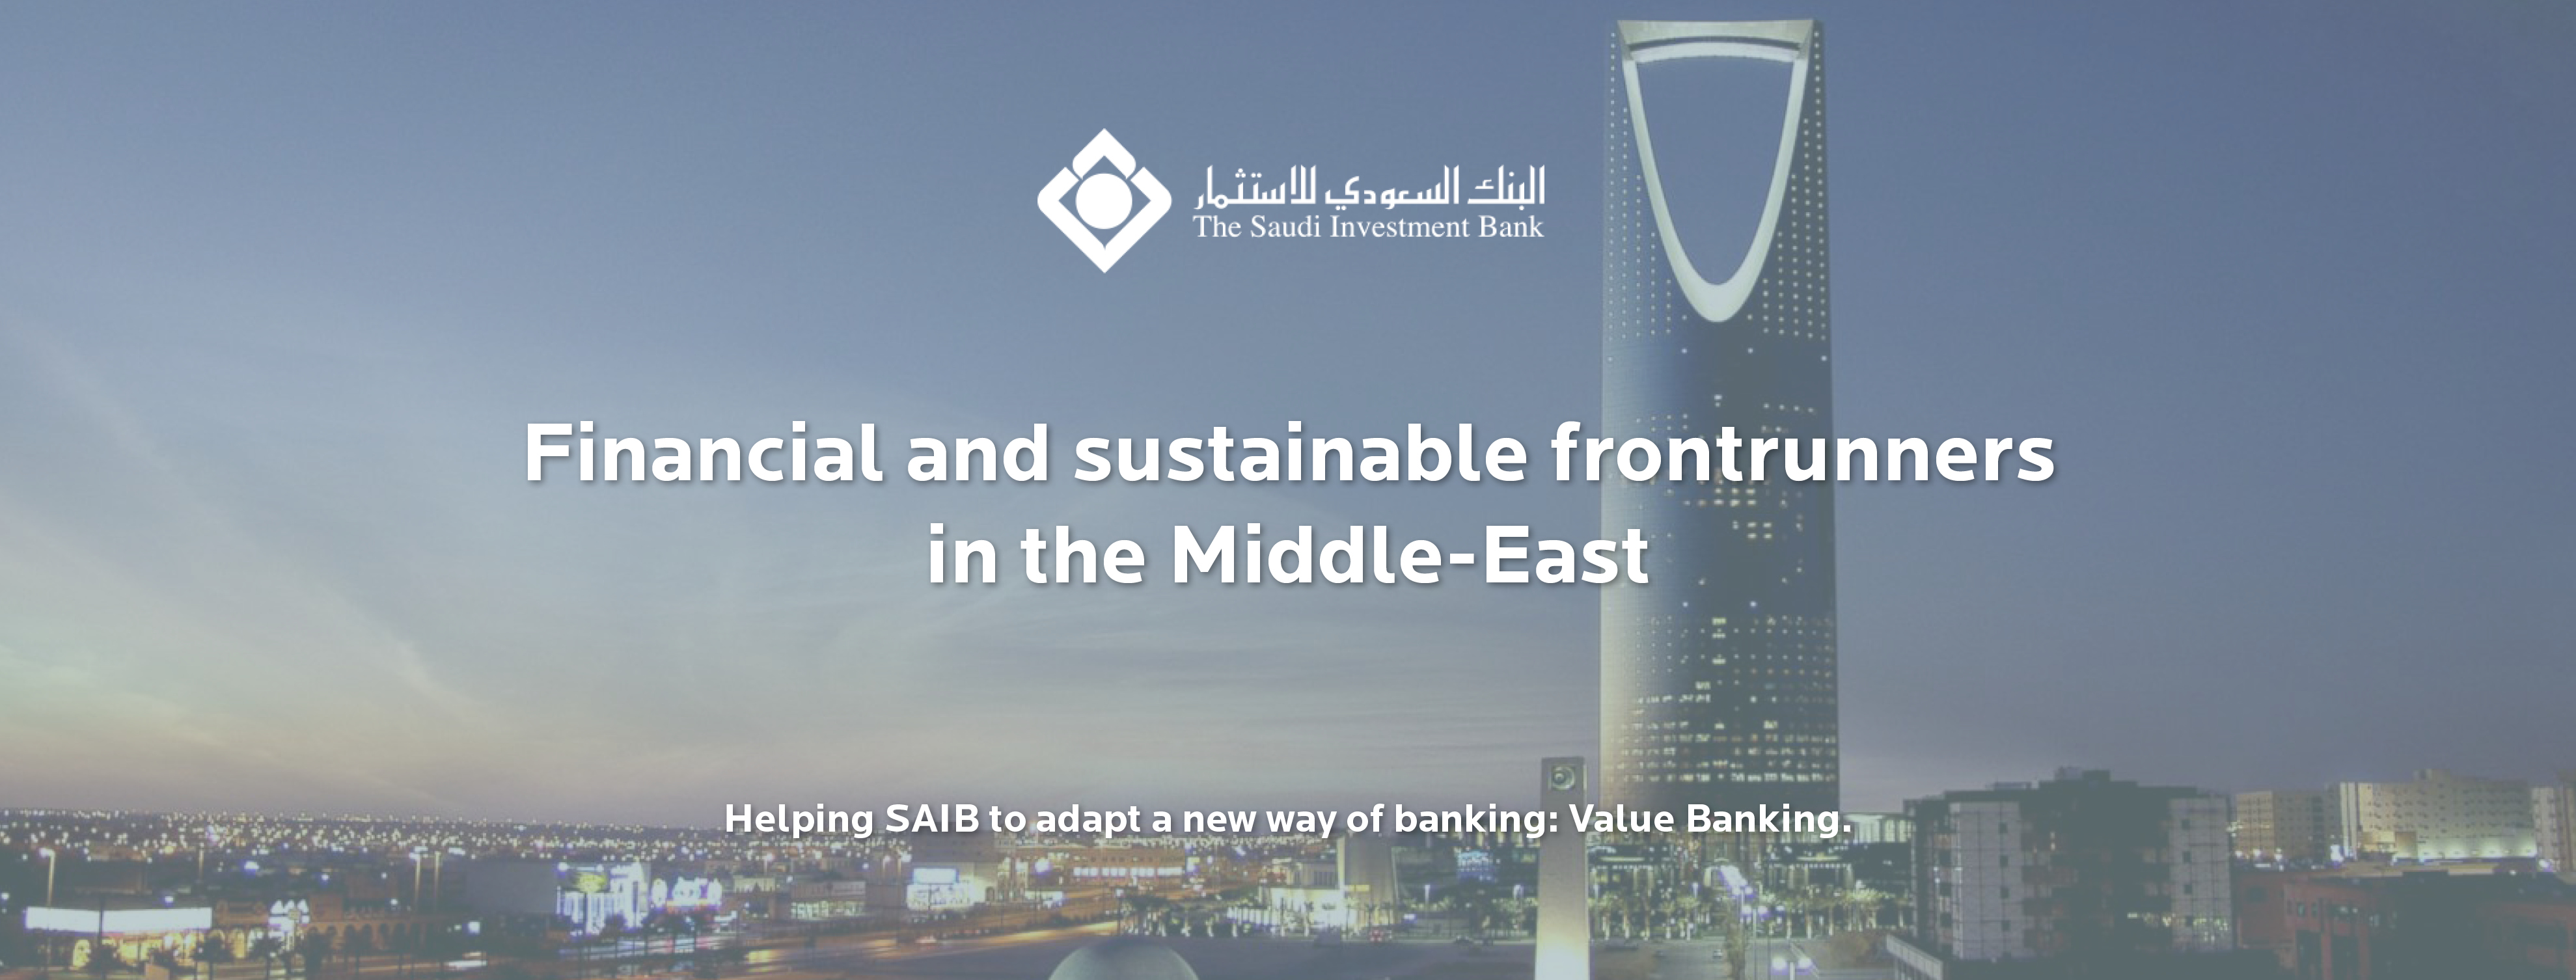 Creating sustainable frontrunners with value banking